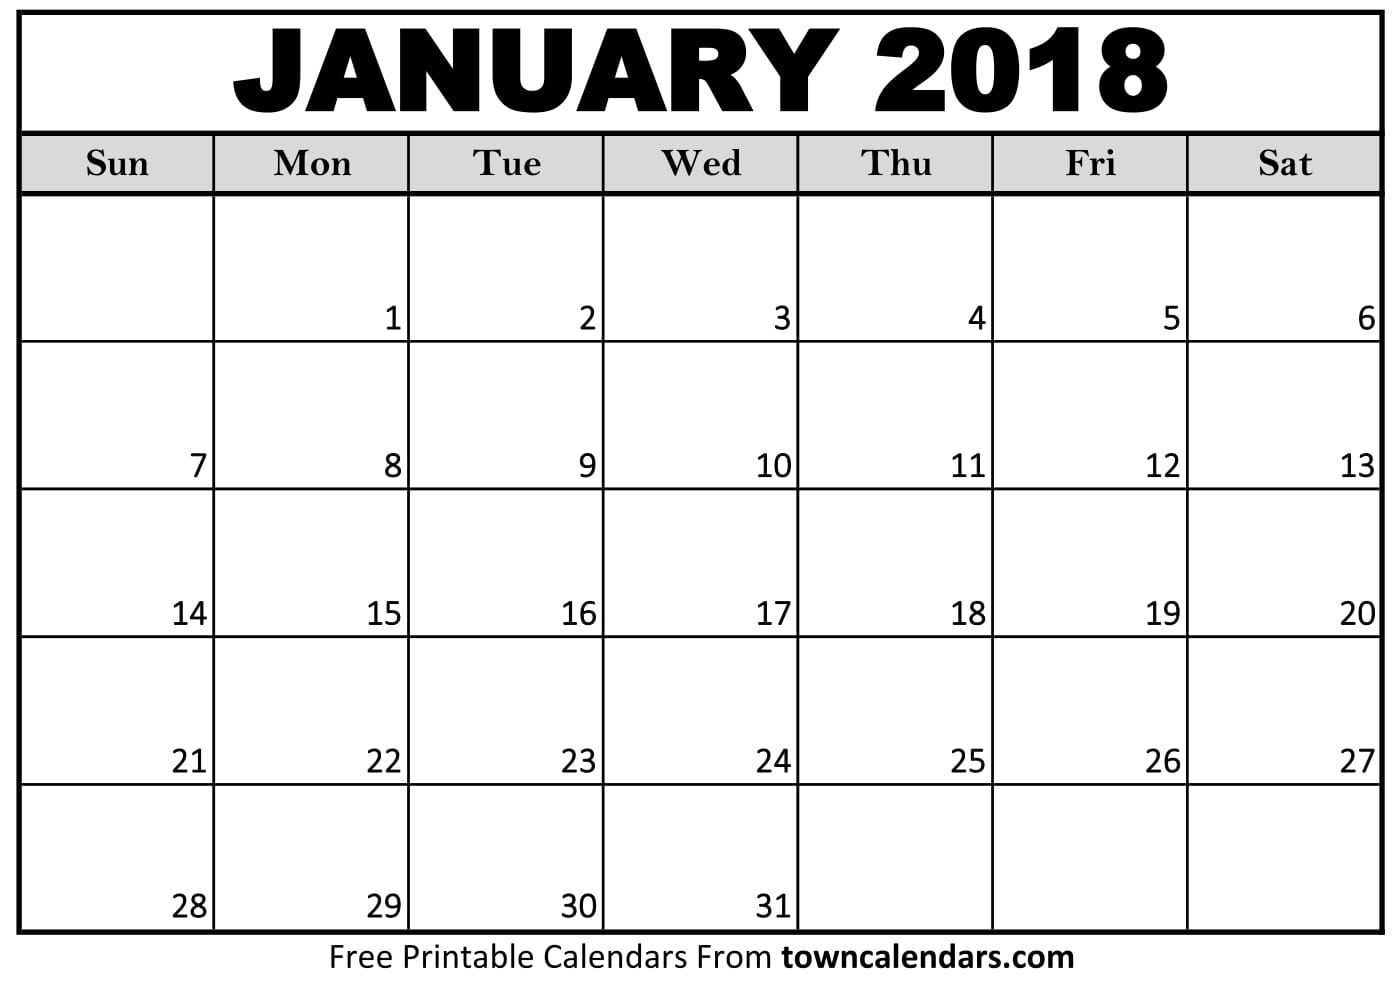 Blank Calendar Jan : January calendar pdf printable template with holidays